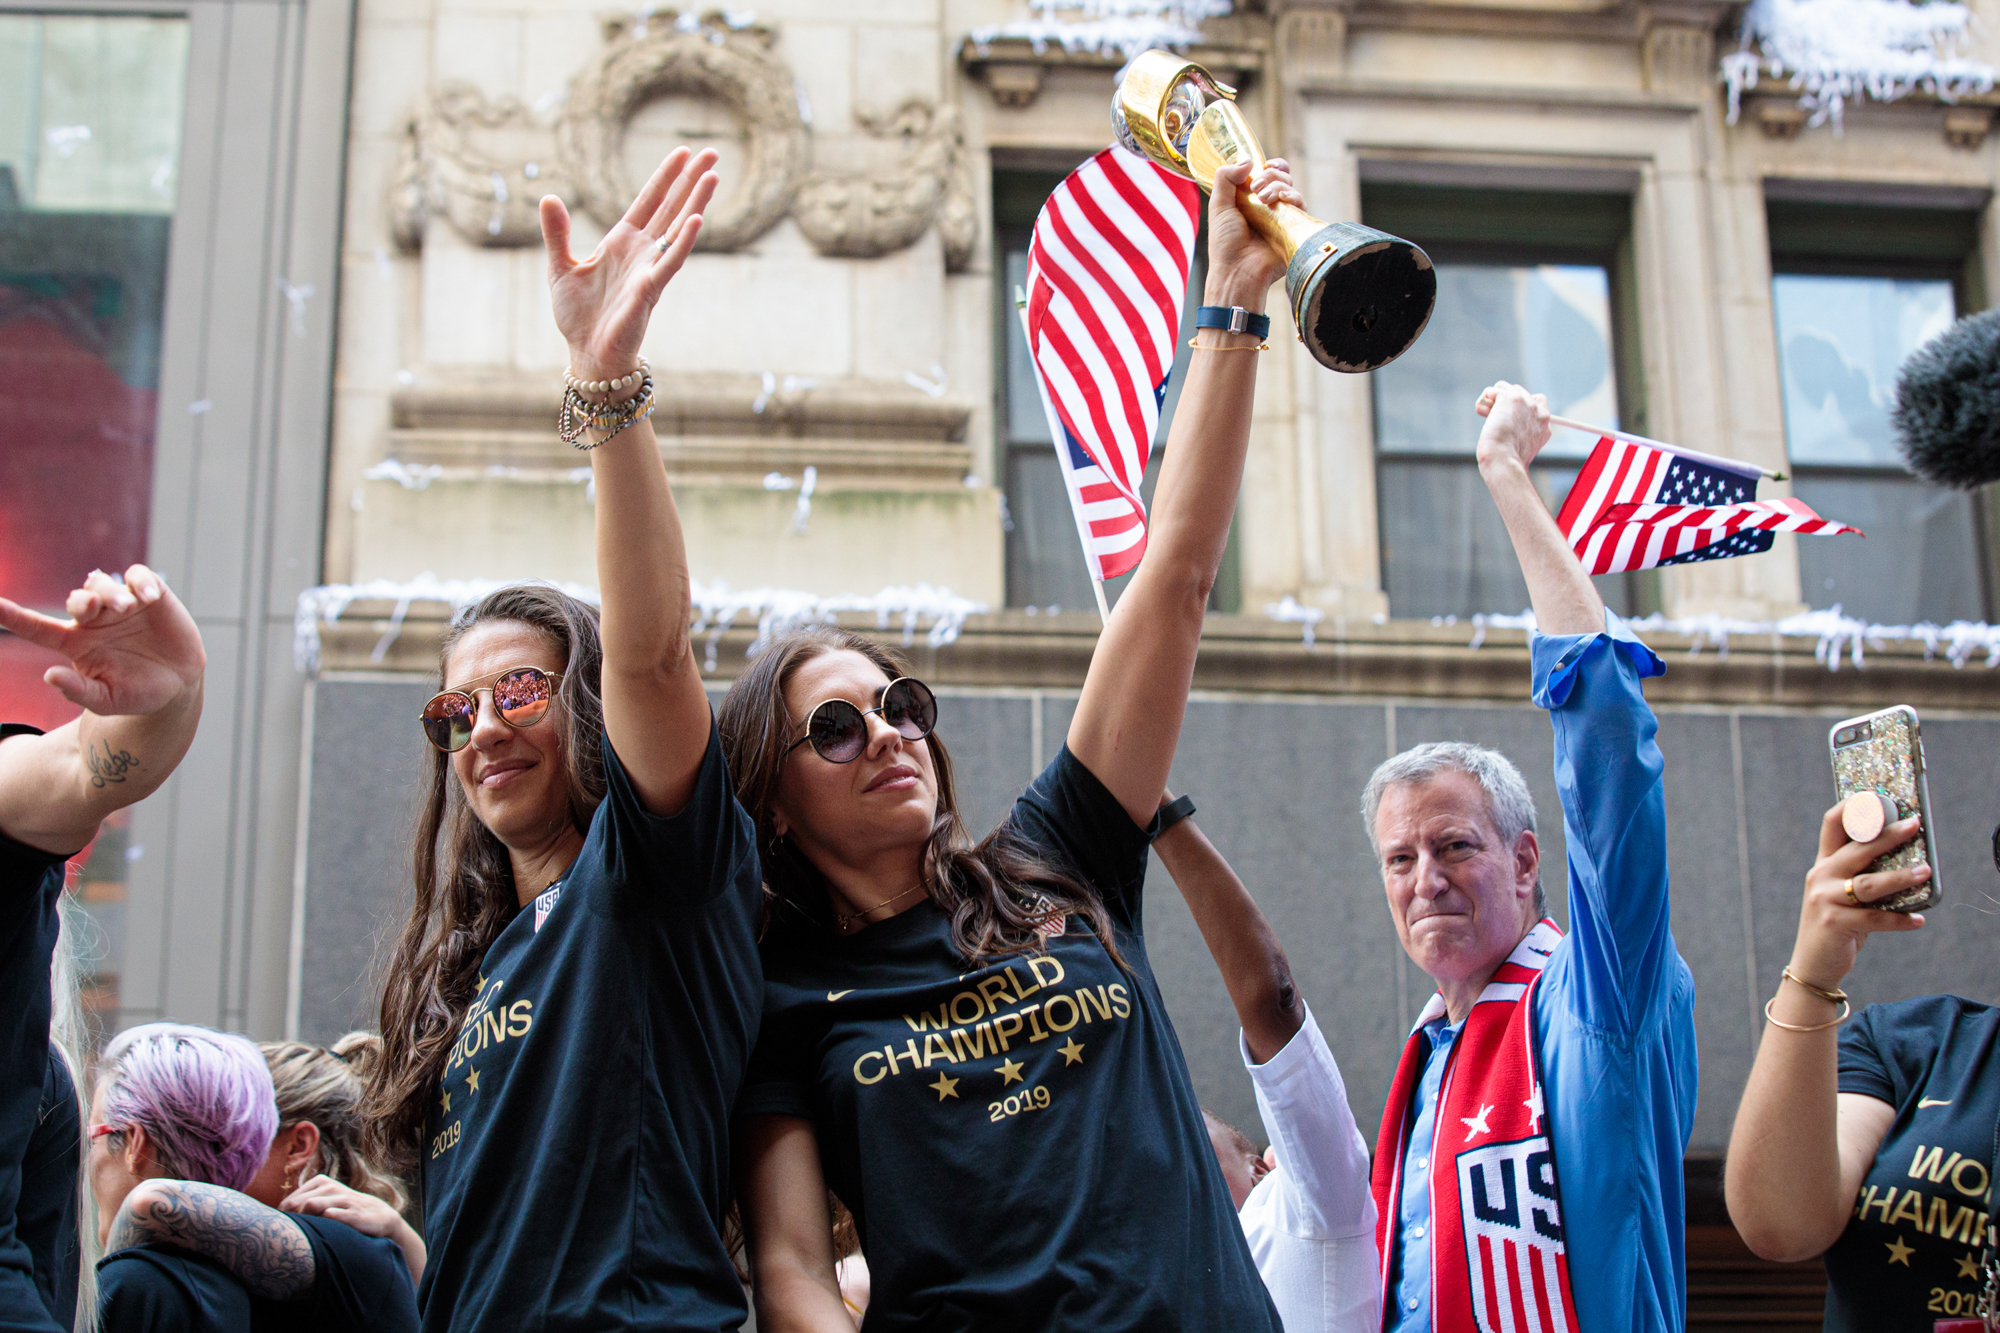 US Women's National Team Ticker Tape Parade July 10, 2019